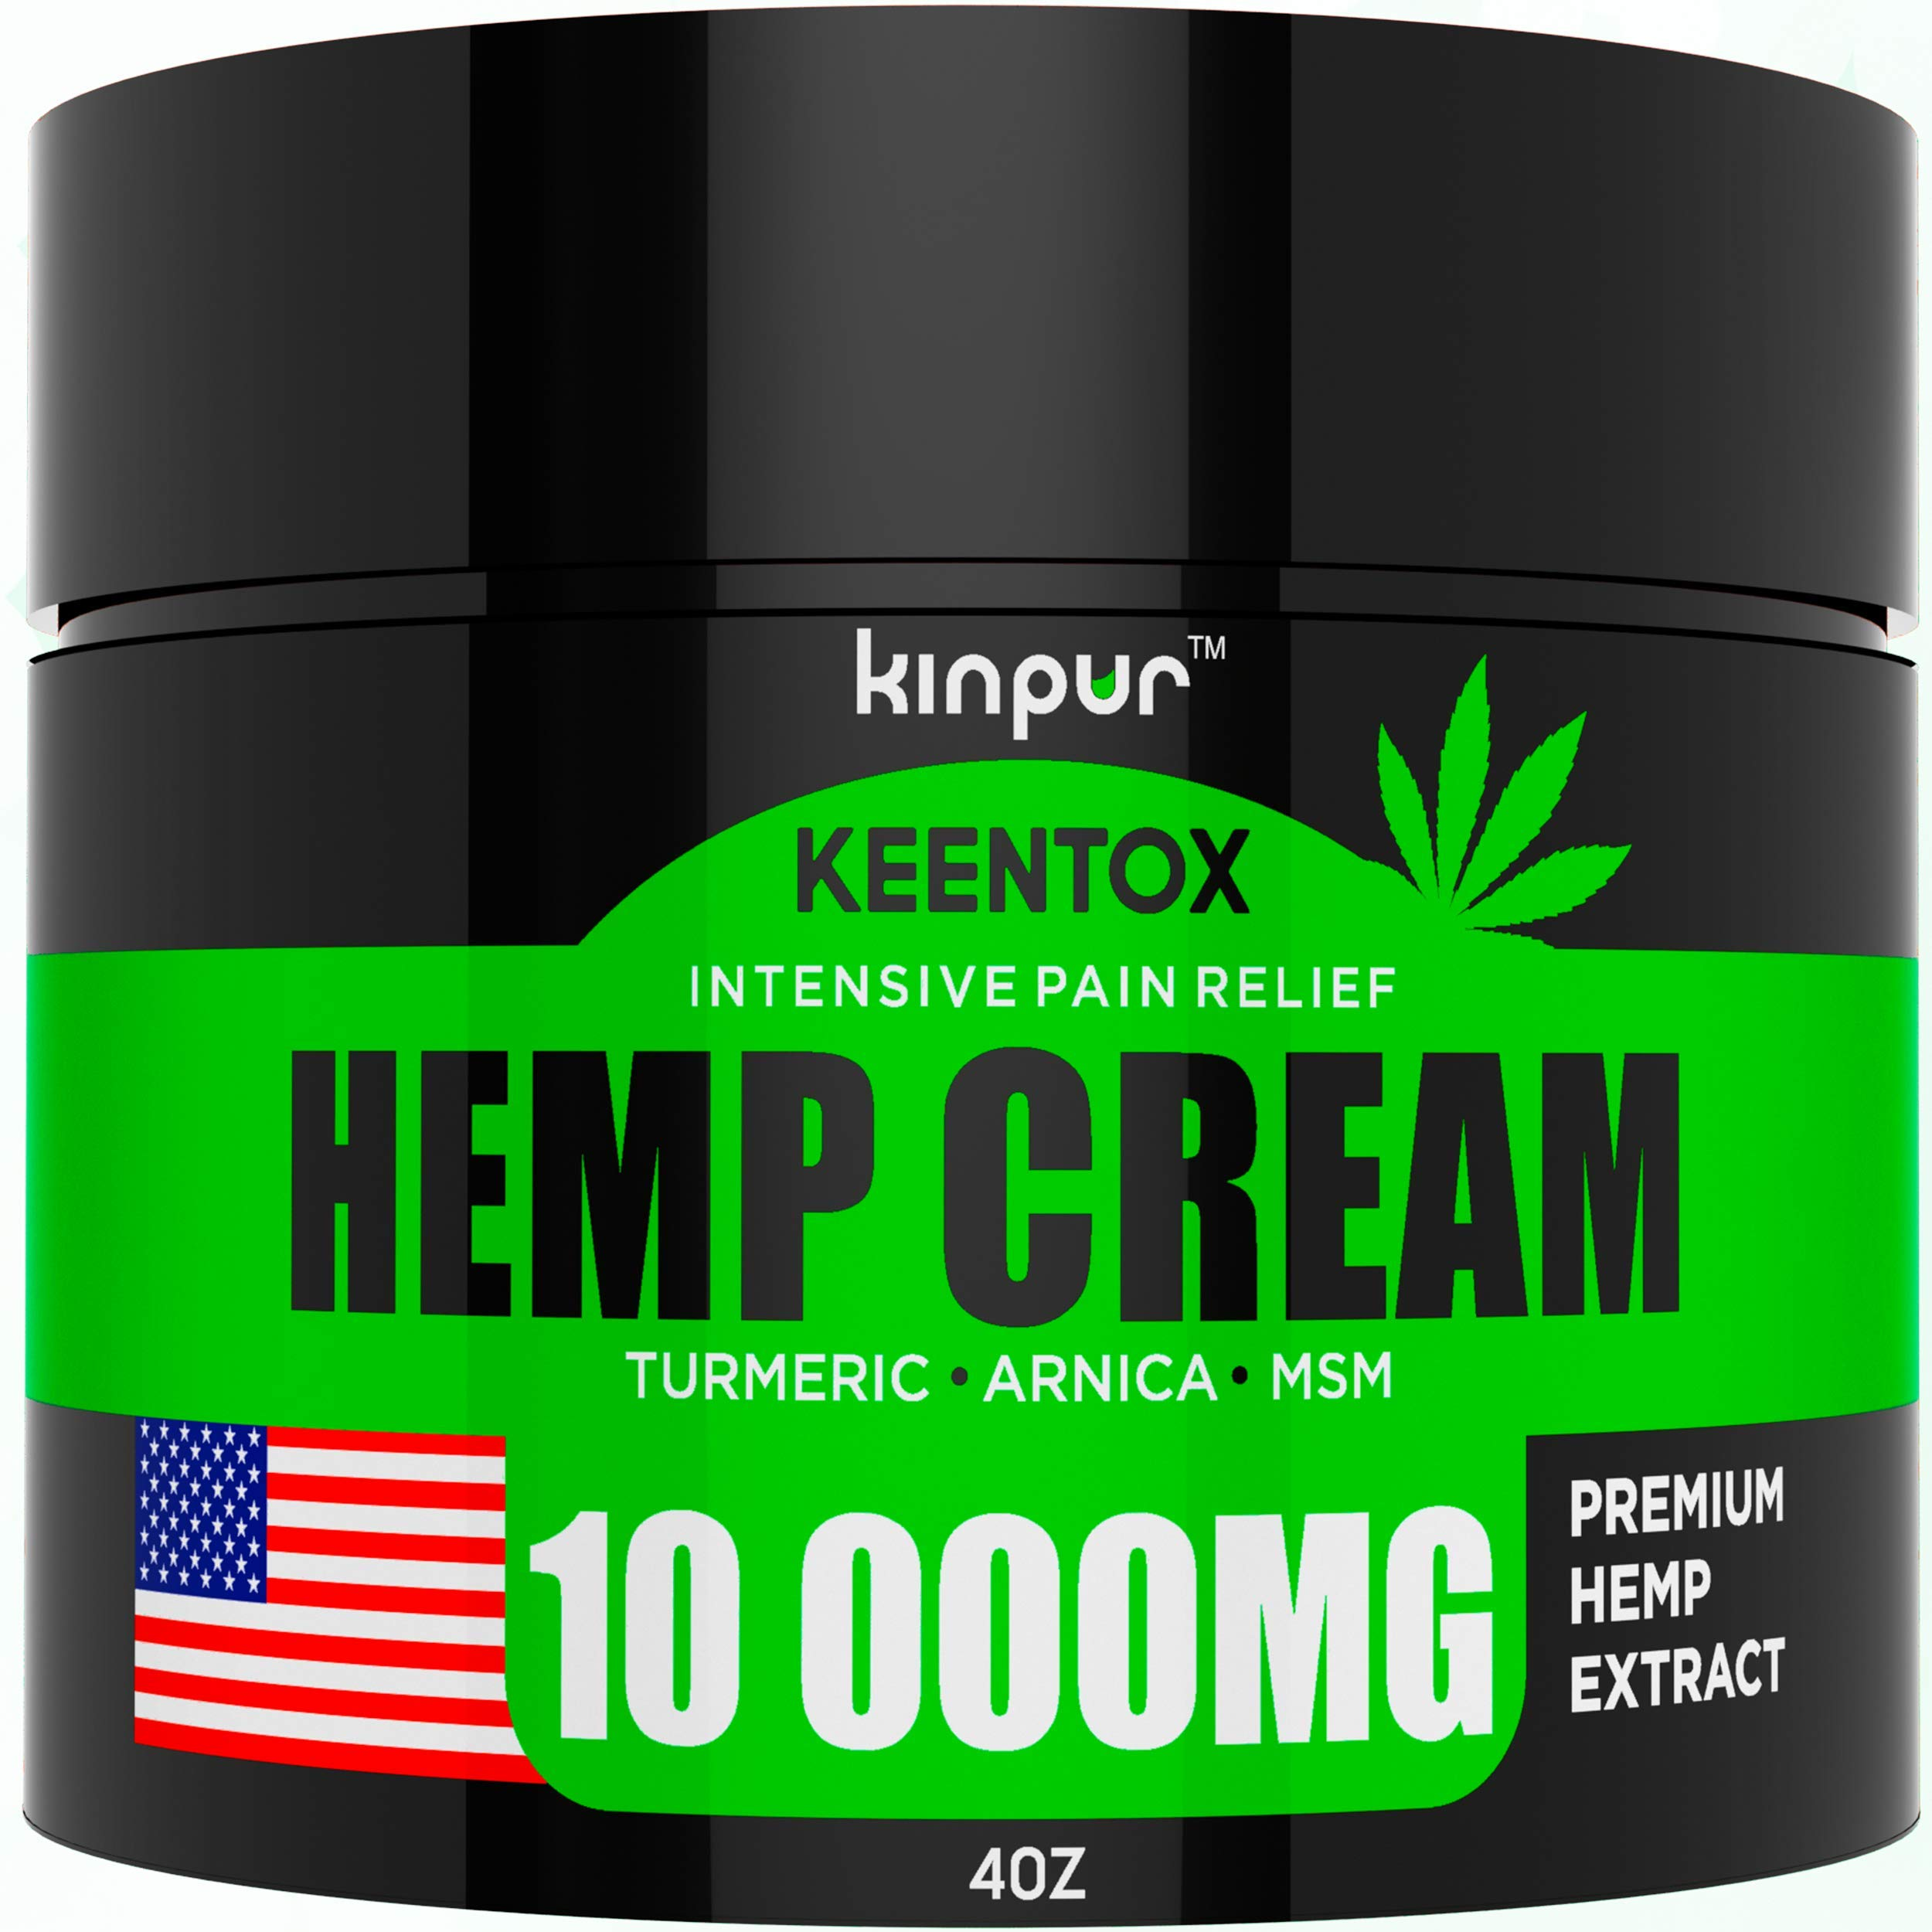 Hemp Pain Relief Cream - 10 000MG - Relieves Muscle, Joint Pain, Lower Back Pain, Knees, and Fingers - Inflammation - Hemp Extract Remedy - Hemp Oil with MSM - EMU Oil - Arnica - Turmeric Made in USA by Kinpur